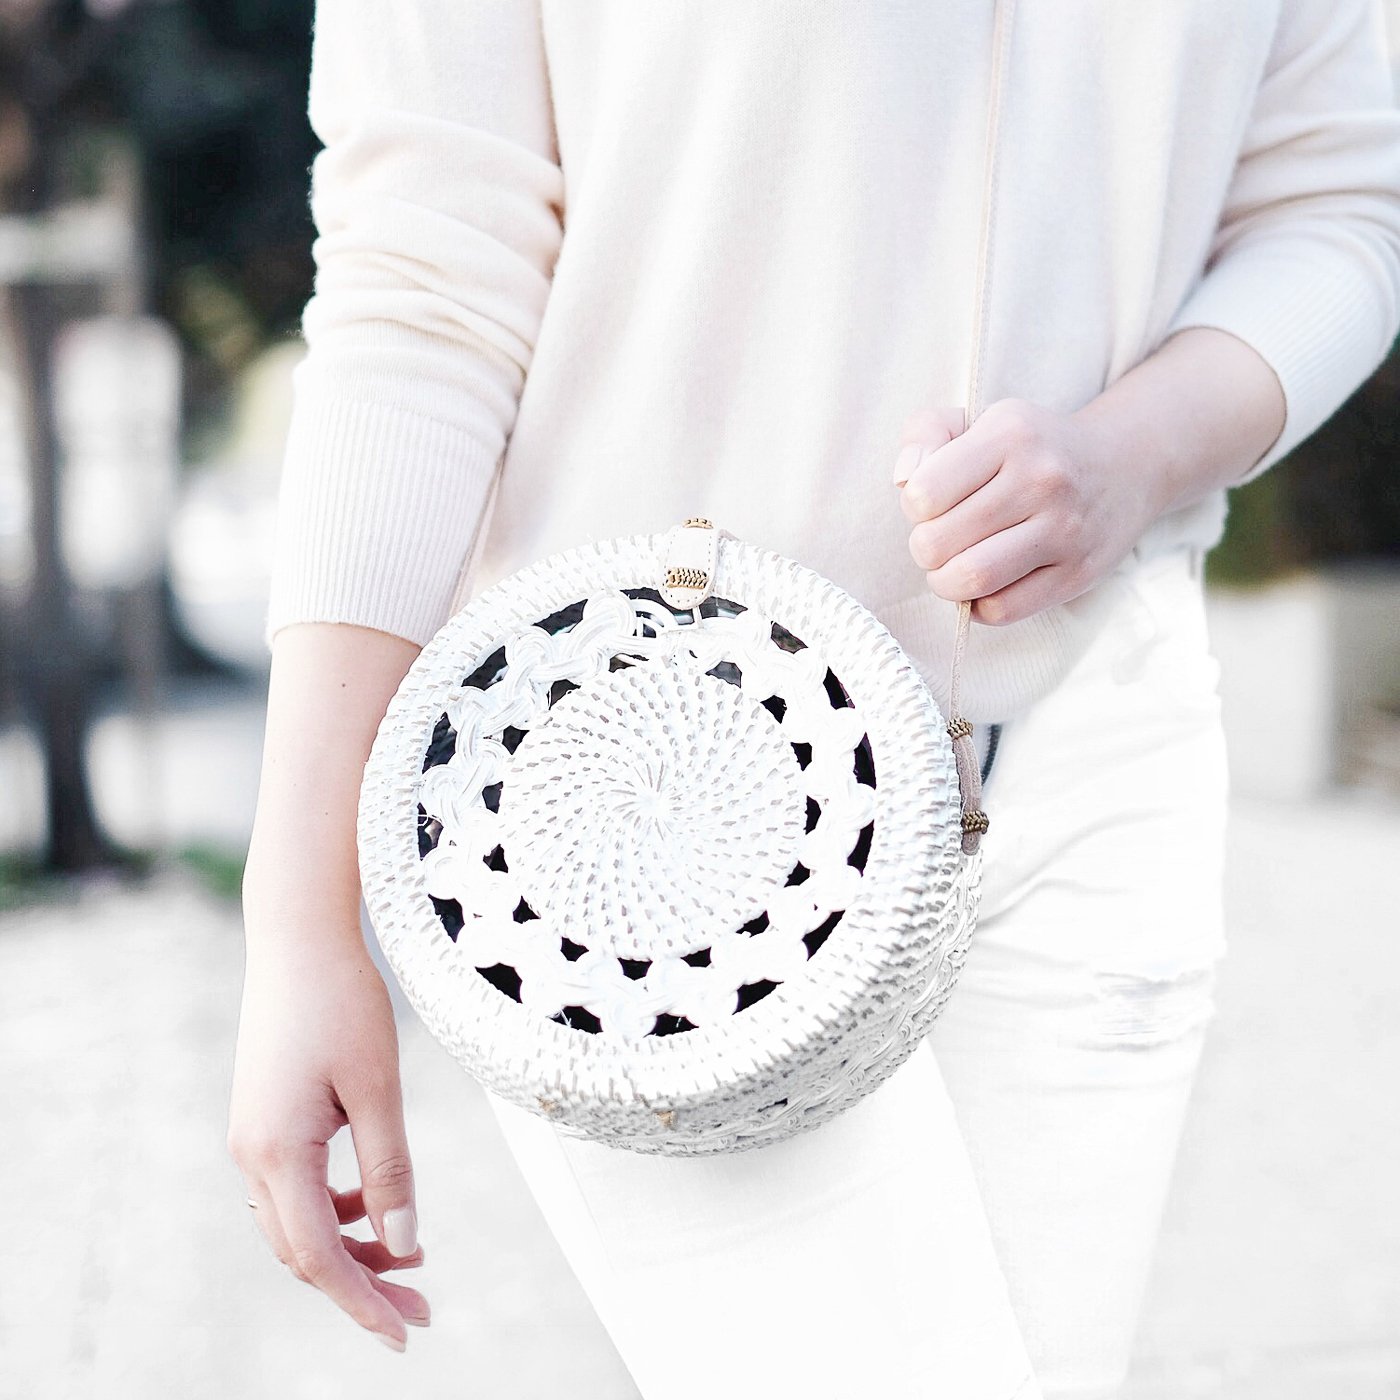 Ellen & James     •     White Round Basket Bag     Cost:  $99  Times Worn as of 3/2019:  20  Cost/Times Worn:  $4.95  Cost/30 Wears:  $3.30